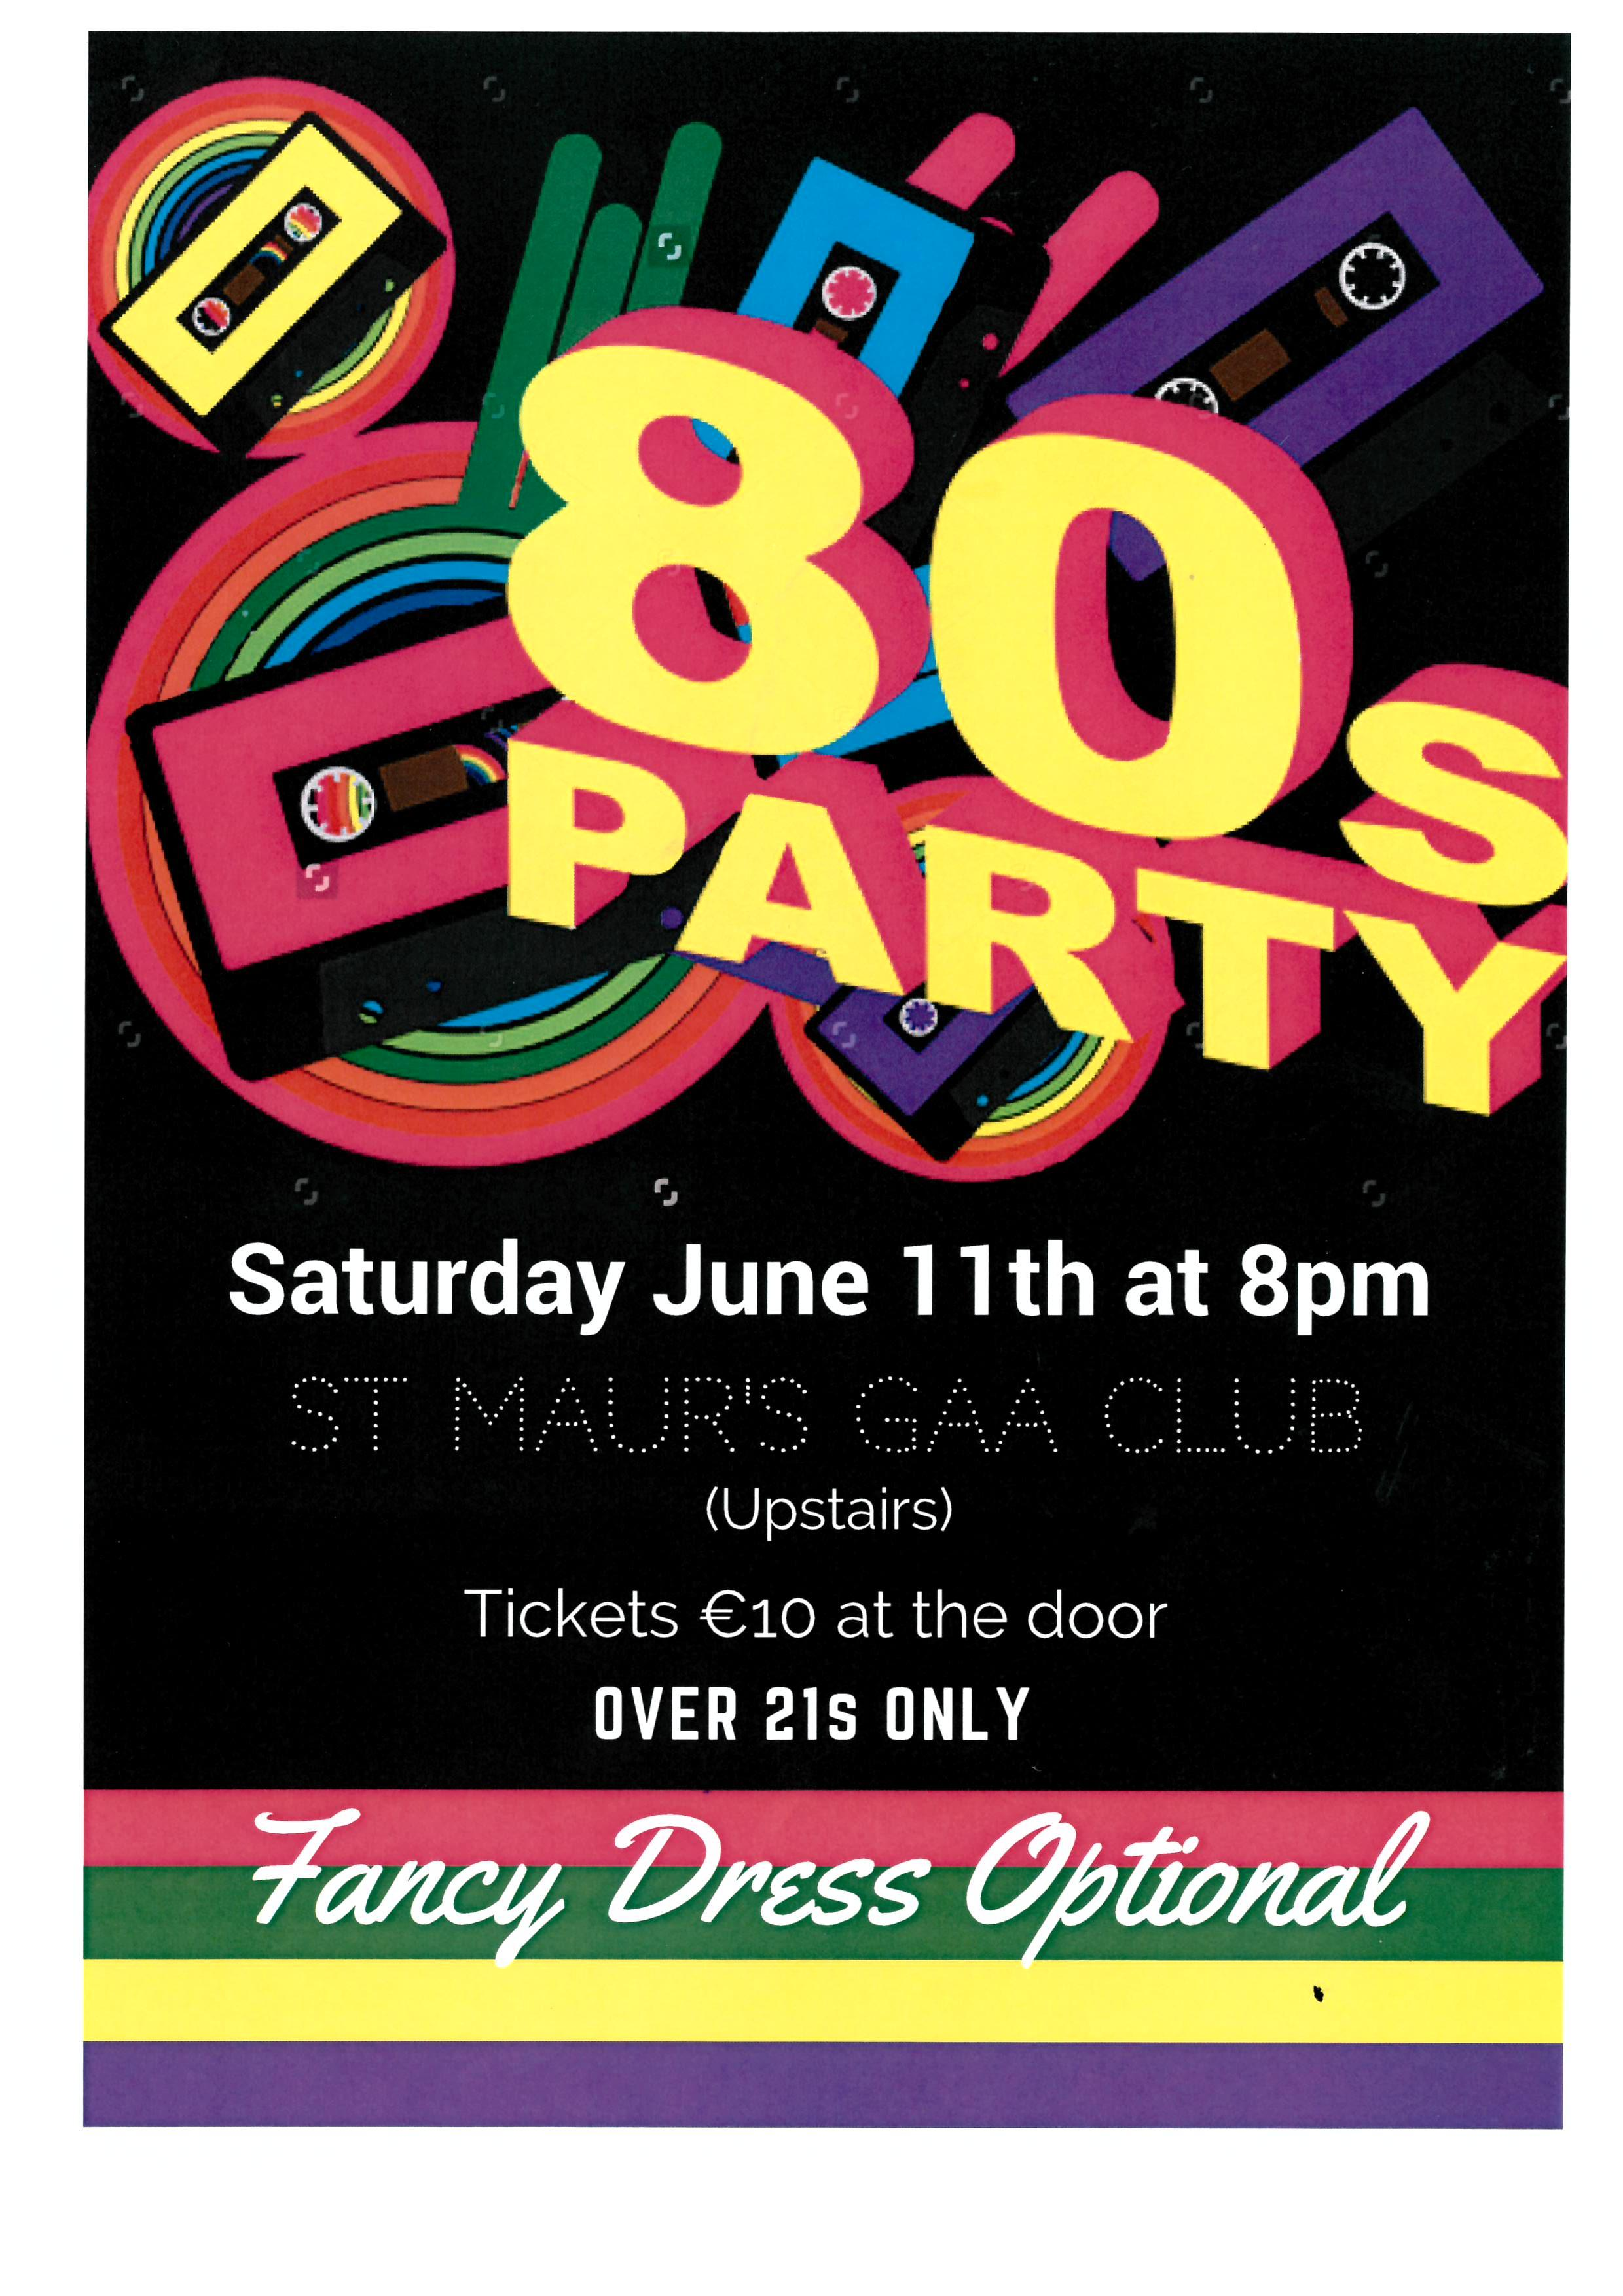 80s Party!